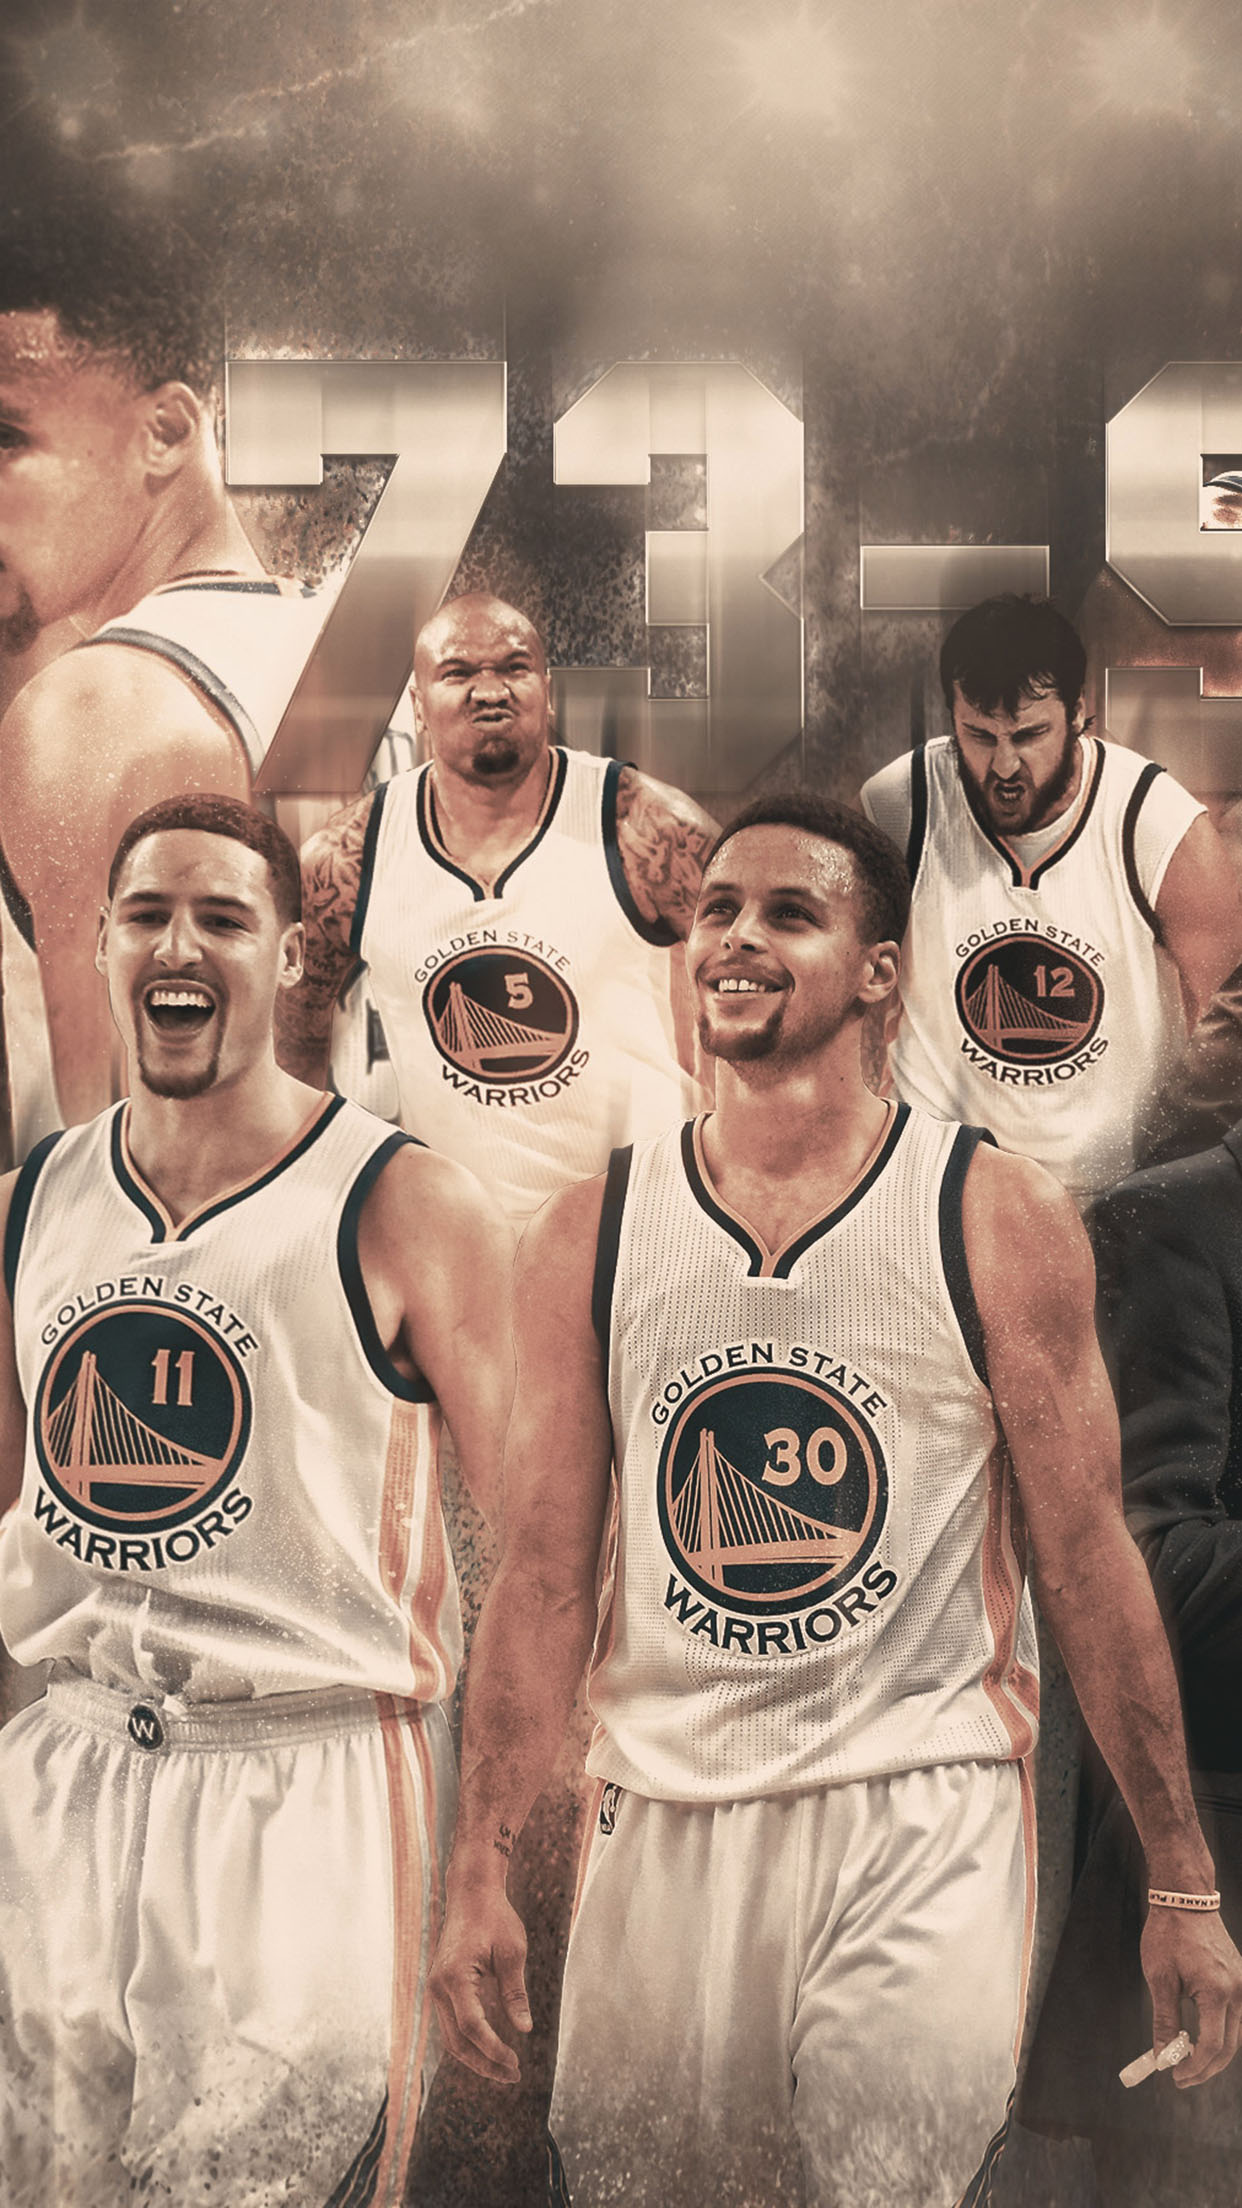 Golden State Warriors 73 9 Record 3Wallpapers iPhone Parallax Golden State Warriors: 73 9 Record